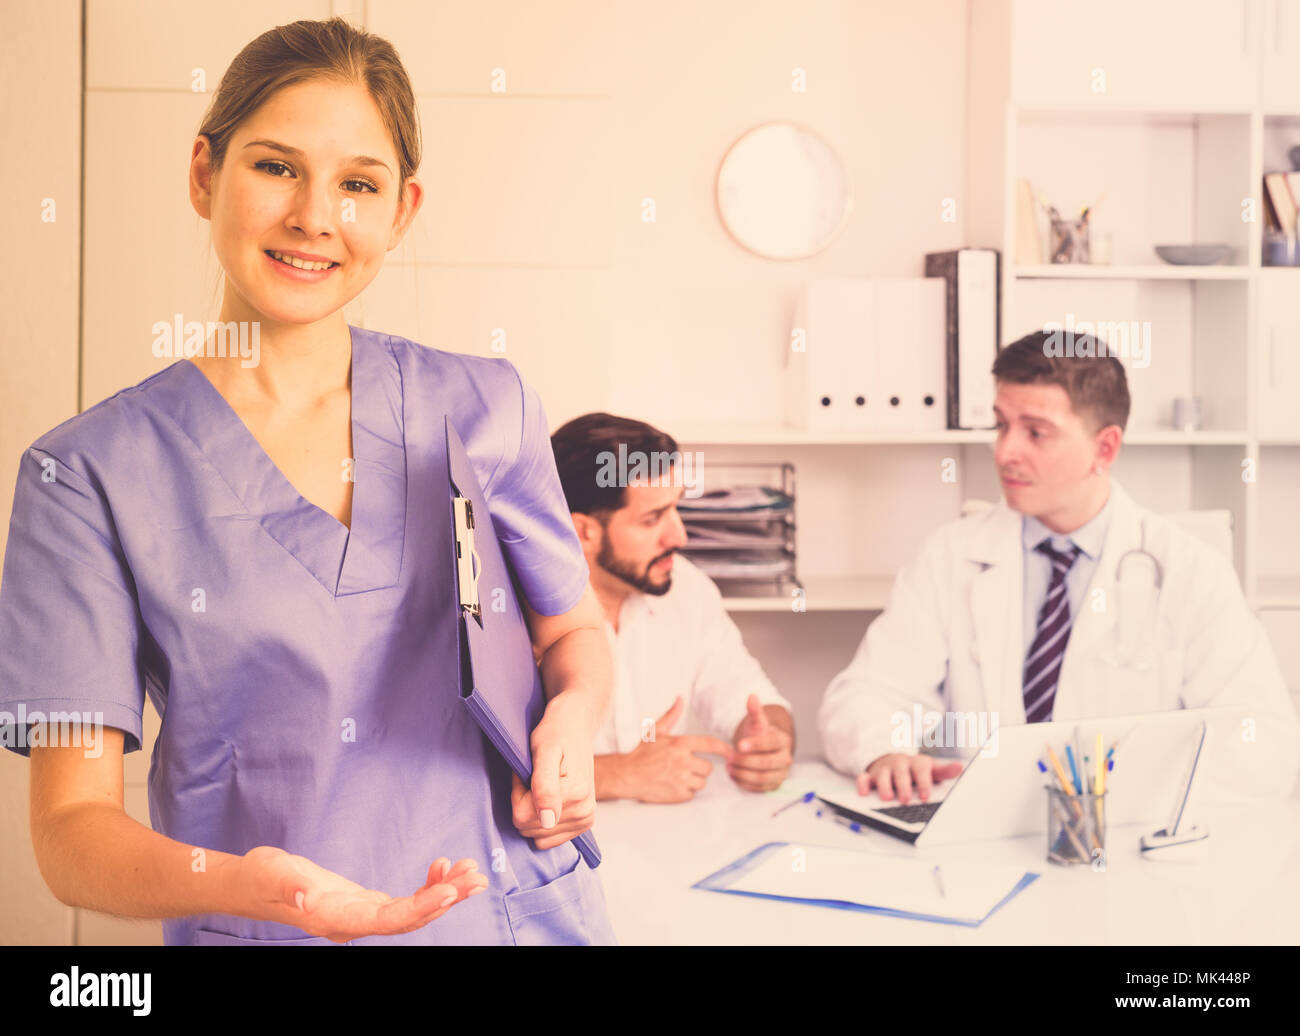 Female doctor making welcome gesture, politely inviting patient in medical office - Stock Image